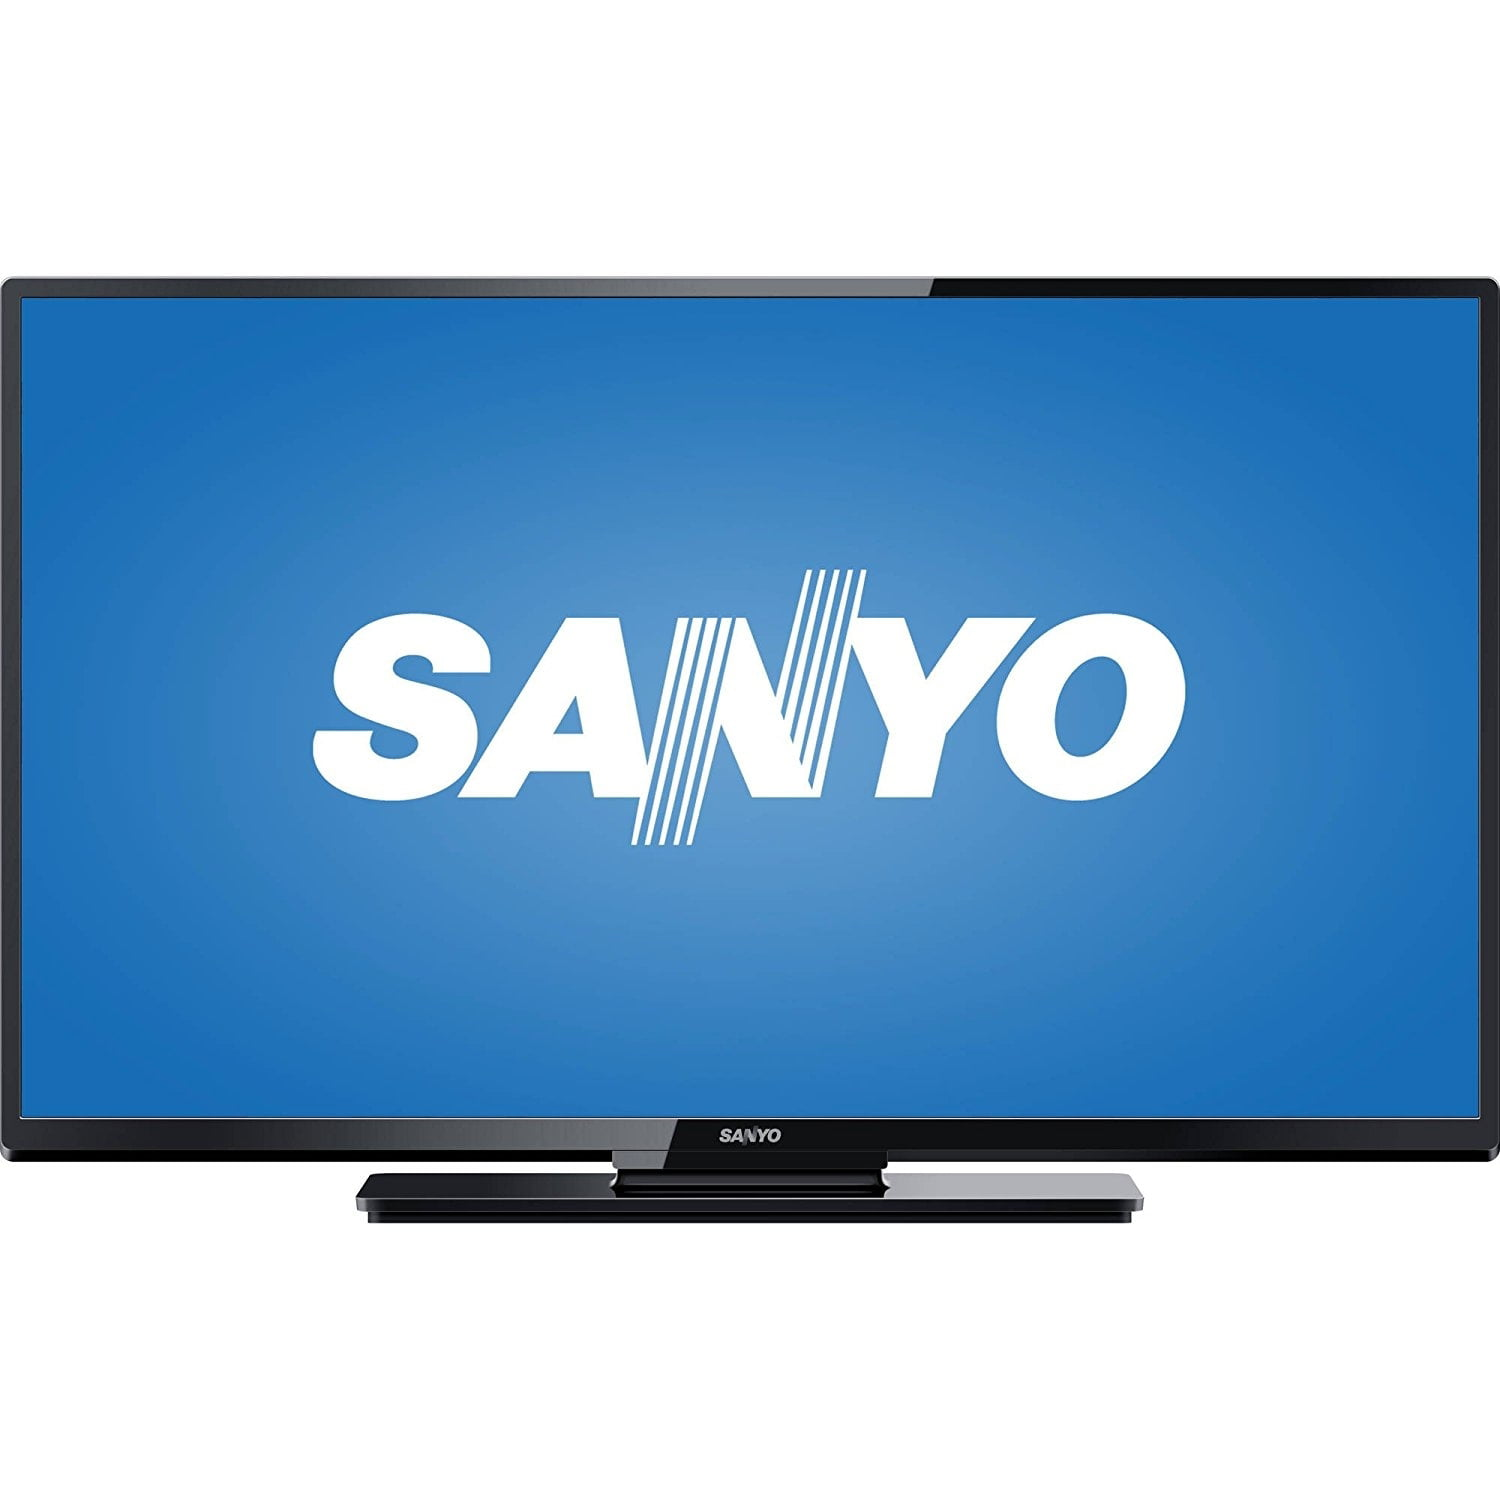 """SANYO�FW43D25F�1080p�43""""�LCD TV, Black� (Certified Refurbished) by Sanyo"""